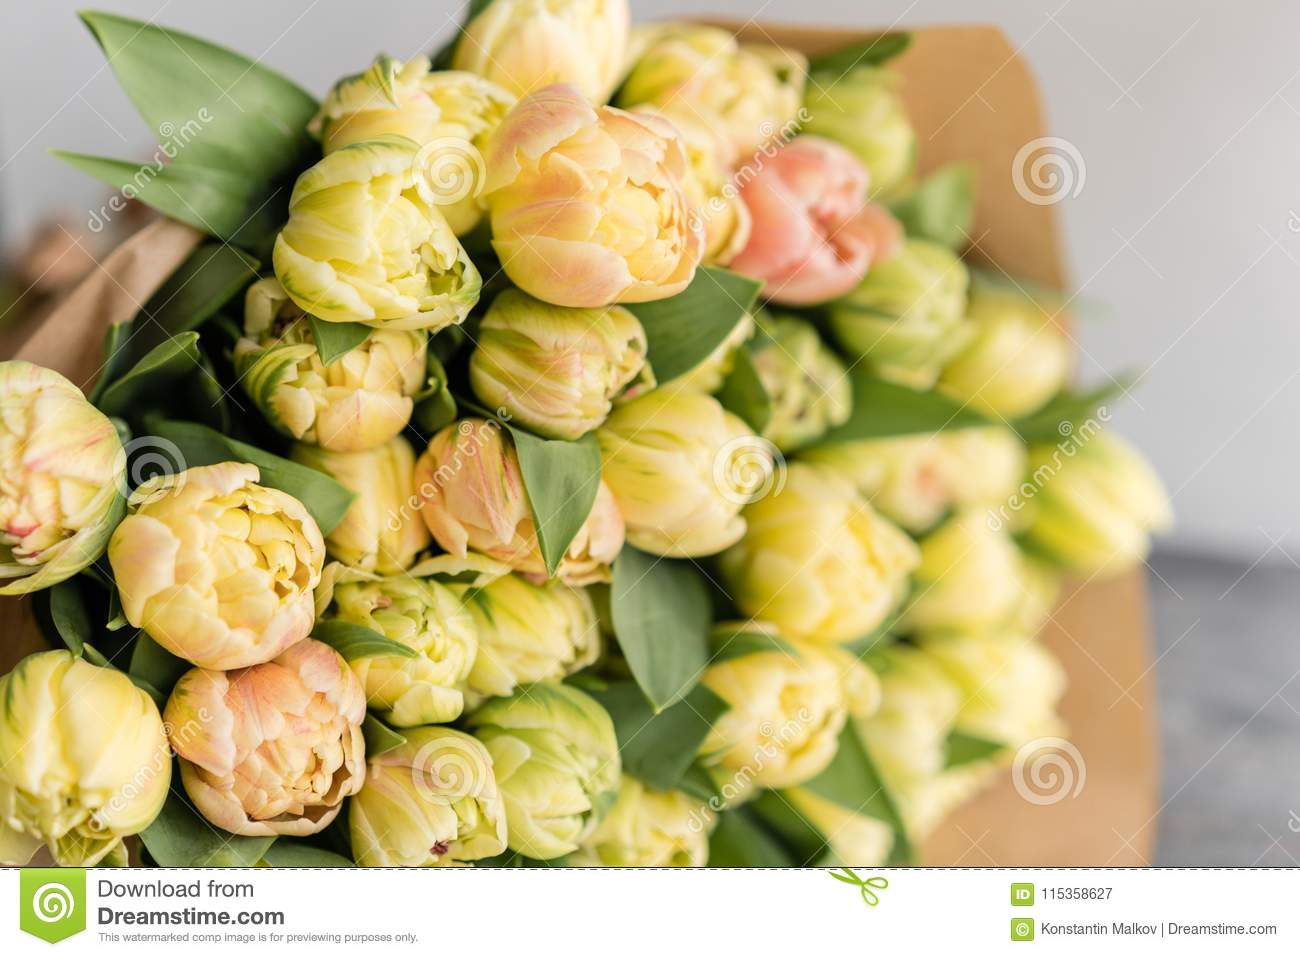 Tulips of pastel yellow color big buds floral natural backdrop tulips of pastel yellow color big buds floral natural backdrop unusual flowers mightylinksfo